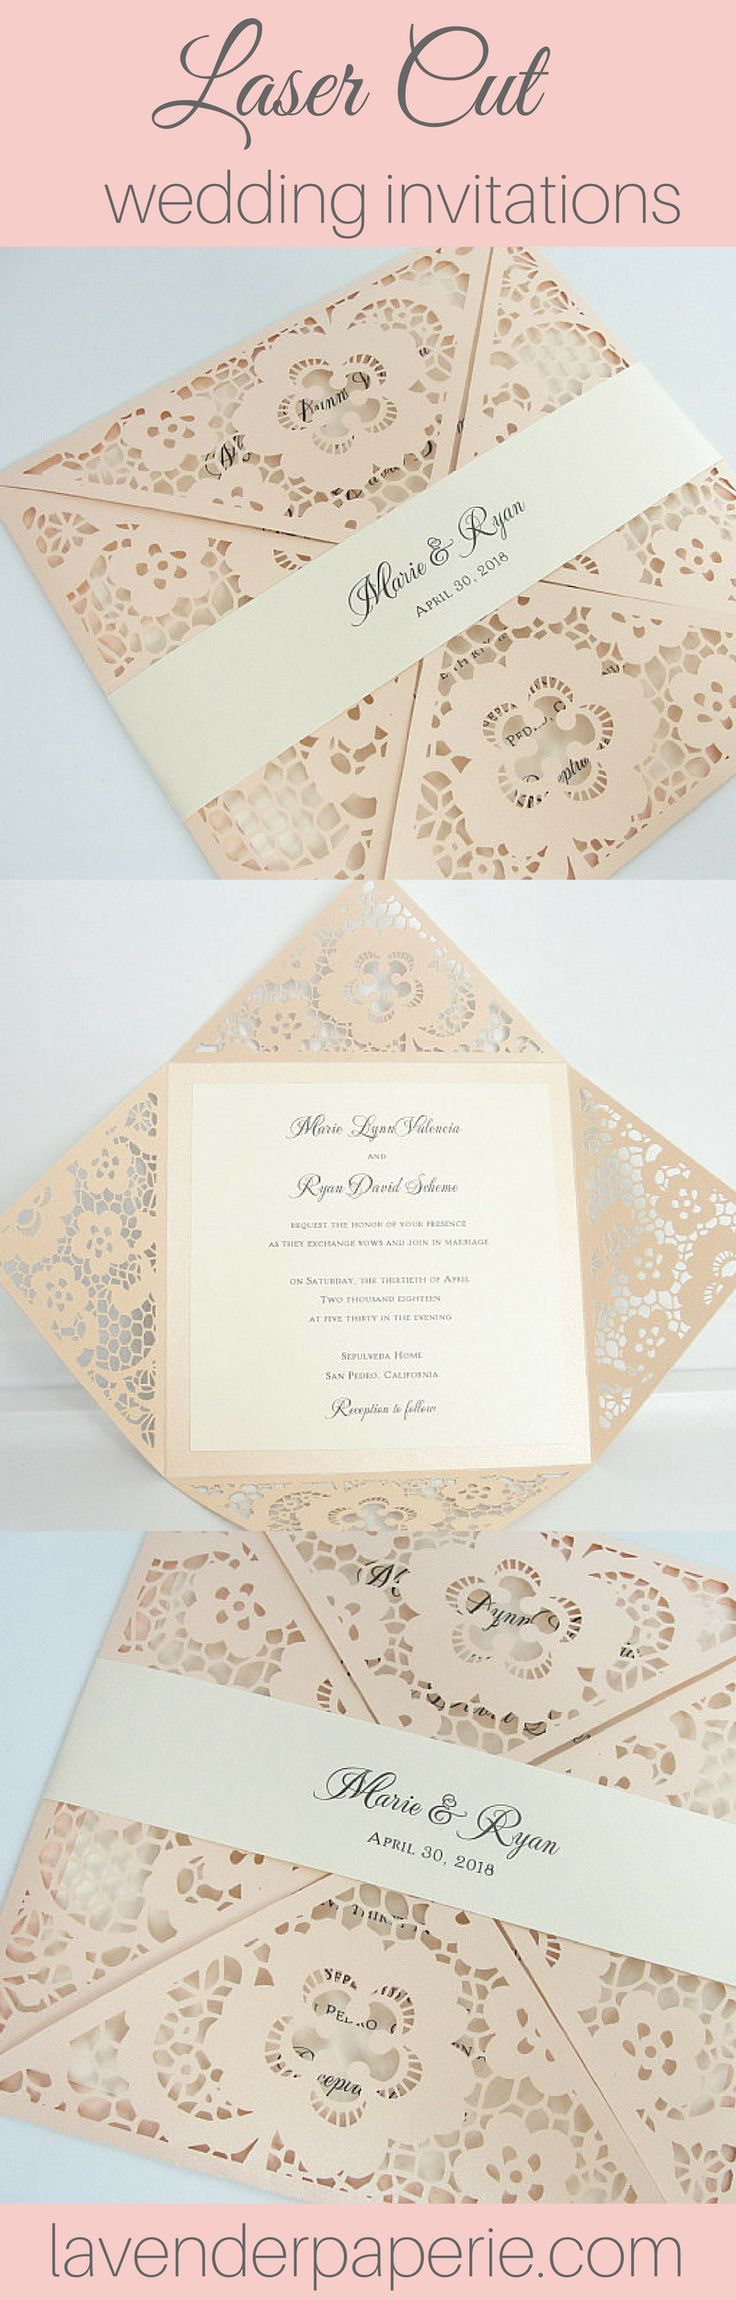 ♥ INVITATION LISTING COLORS ♥This uniquely inspired invitation is printed on ivory shimmer cardstock nestled neatly inside a blush shimmer laser cut outer w